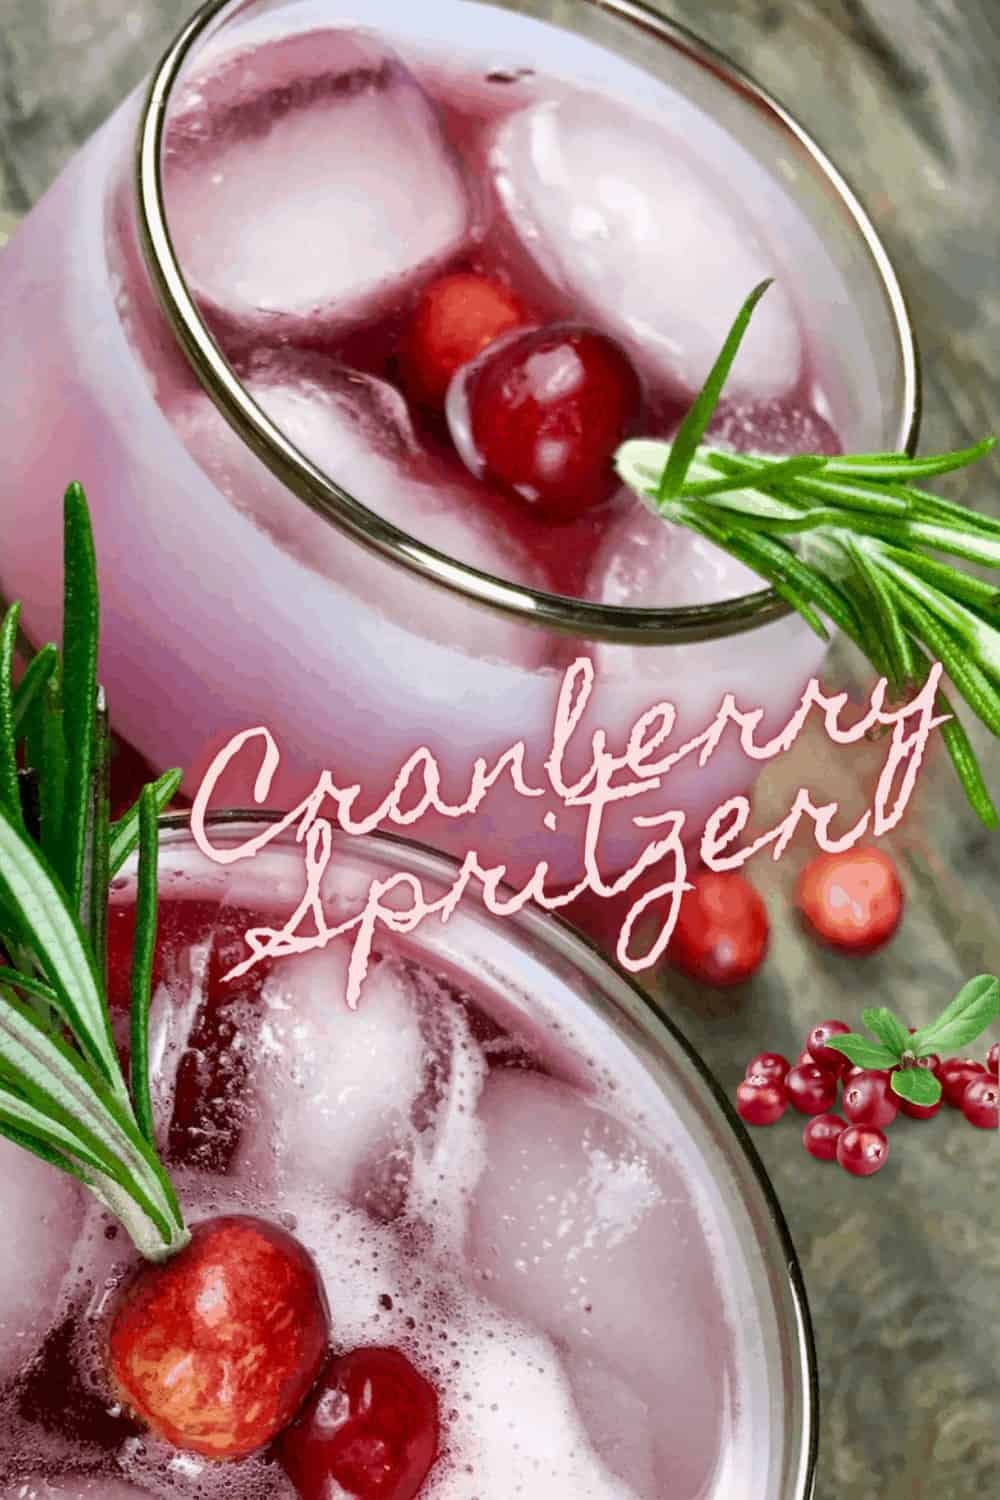 cranberry spritzer in glass with ice